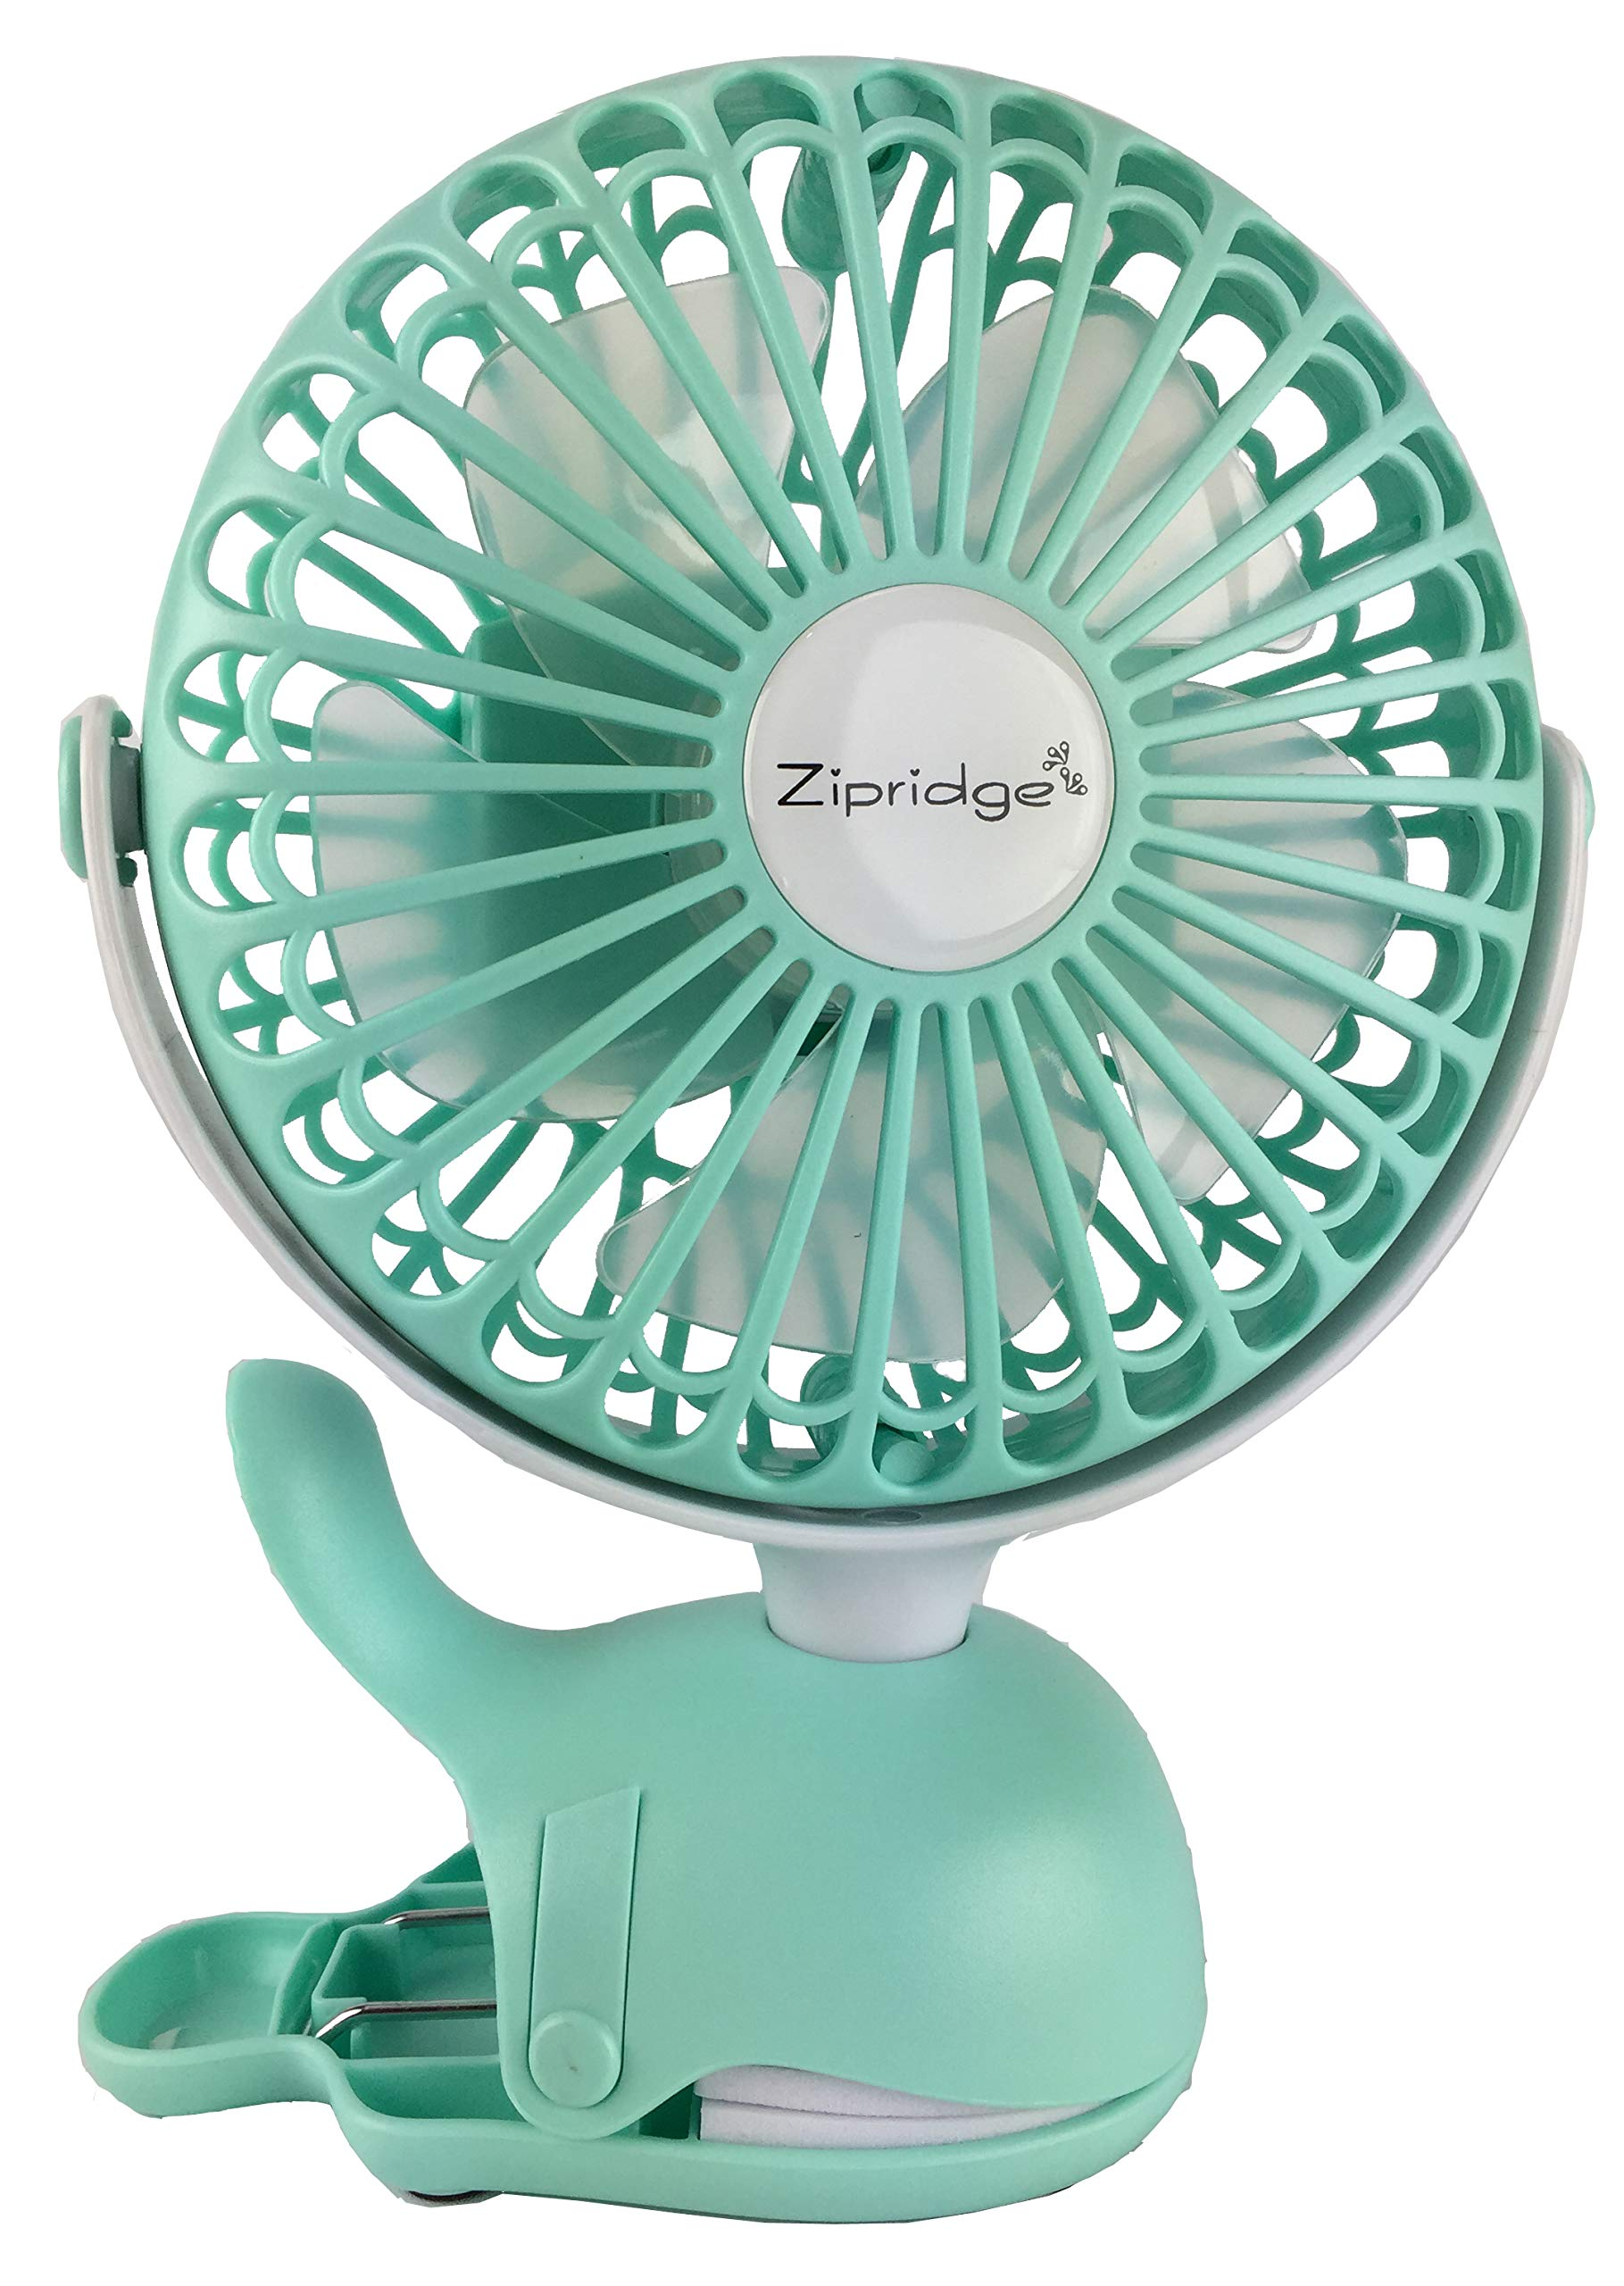 Clip On Baby Stroller Fan With Rechargeable Battery Perfect for Infant Crib, Golf Cart, Car Seat, Office Desk, Camping, or Workout in A Playful Whale Design by Zipridge